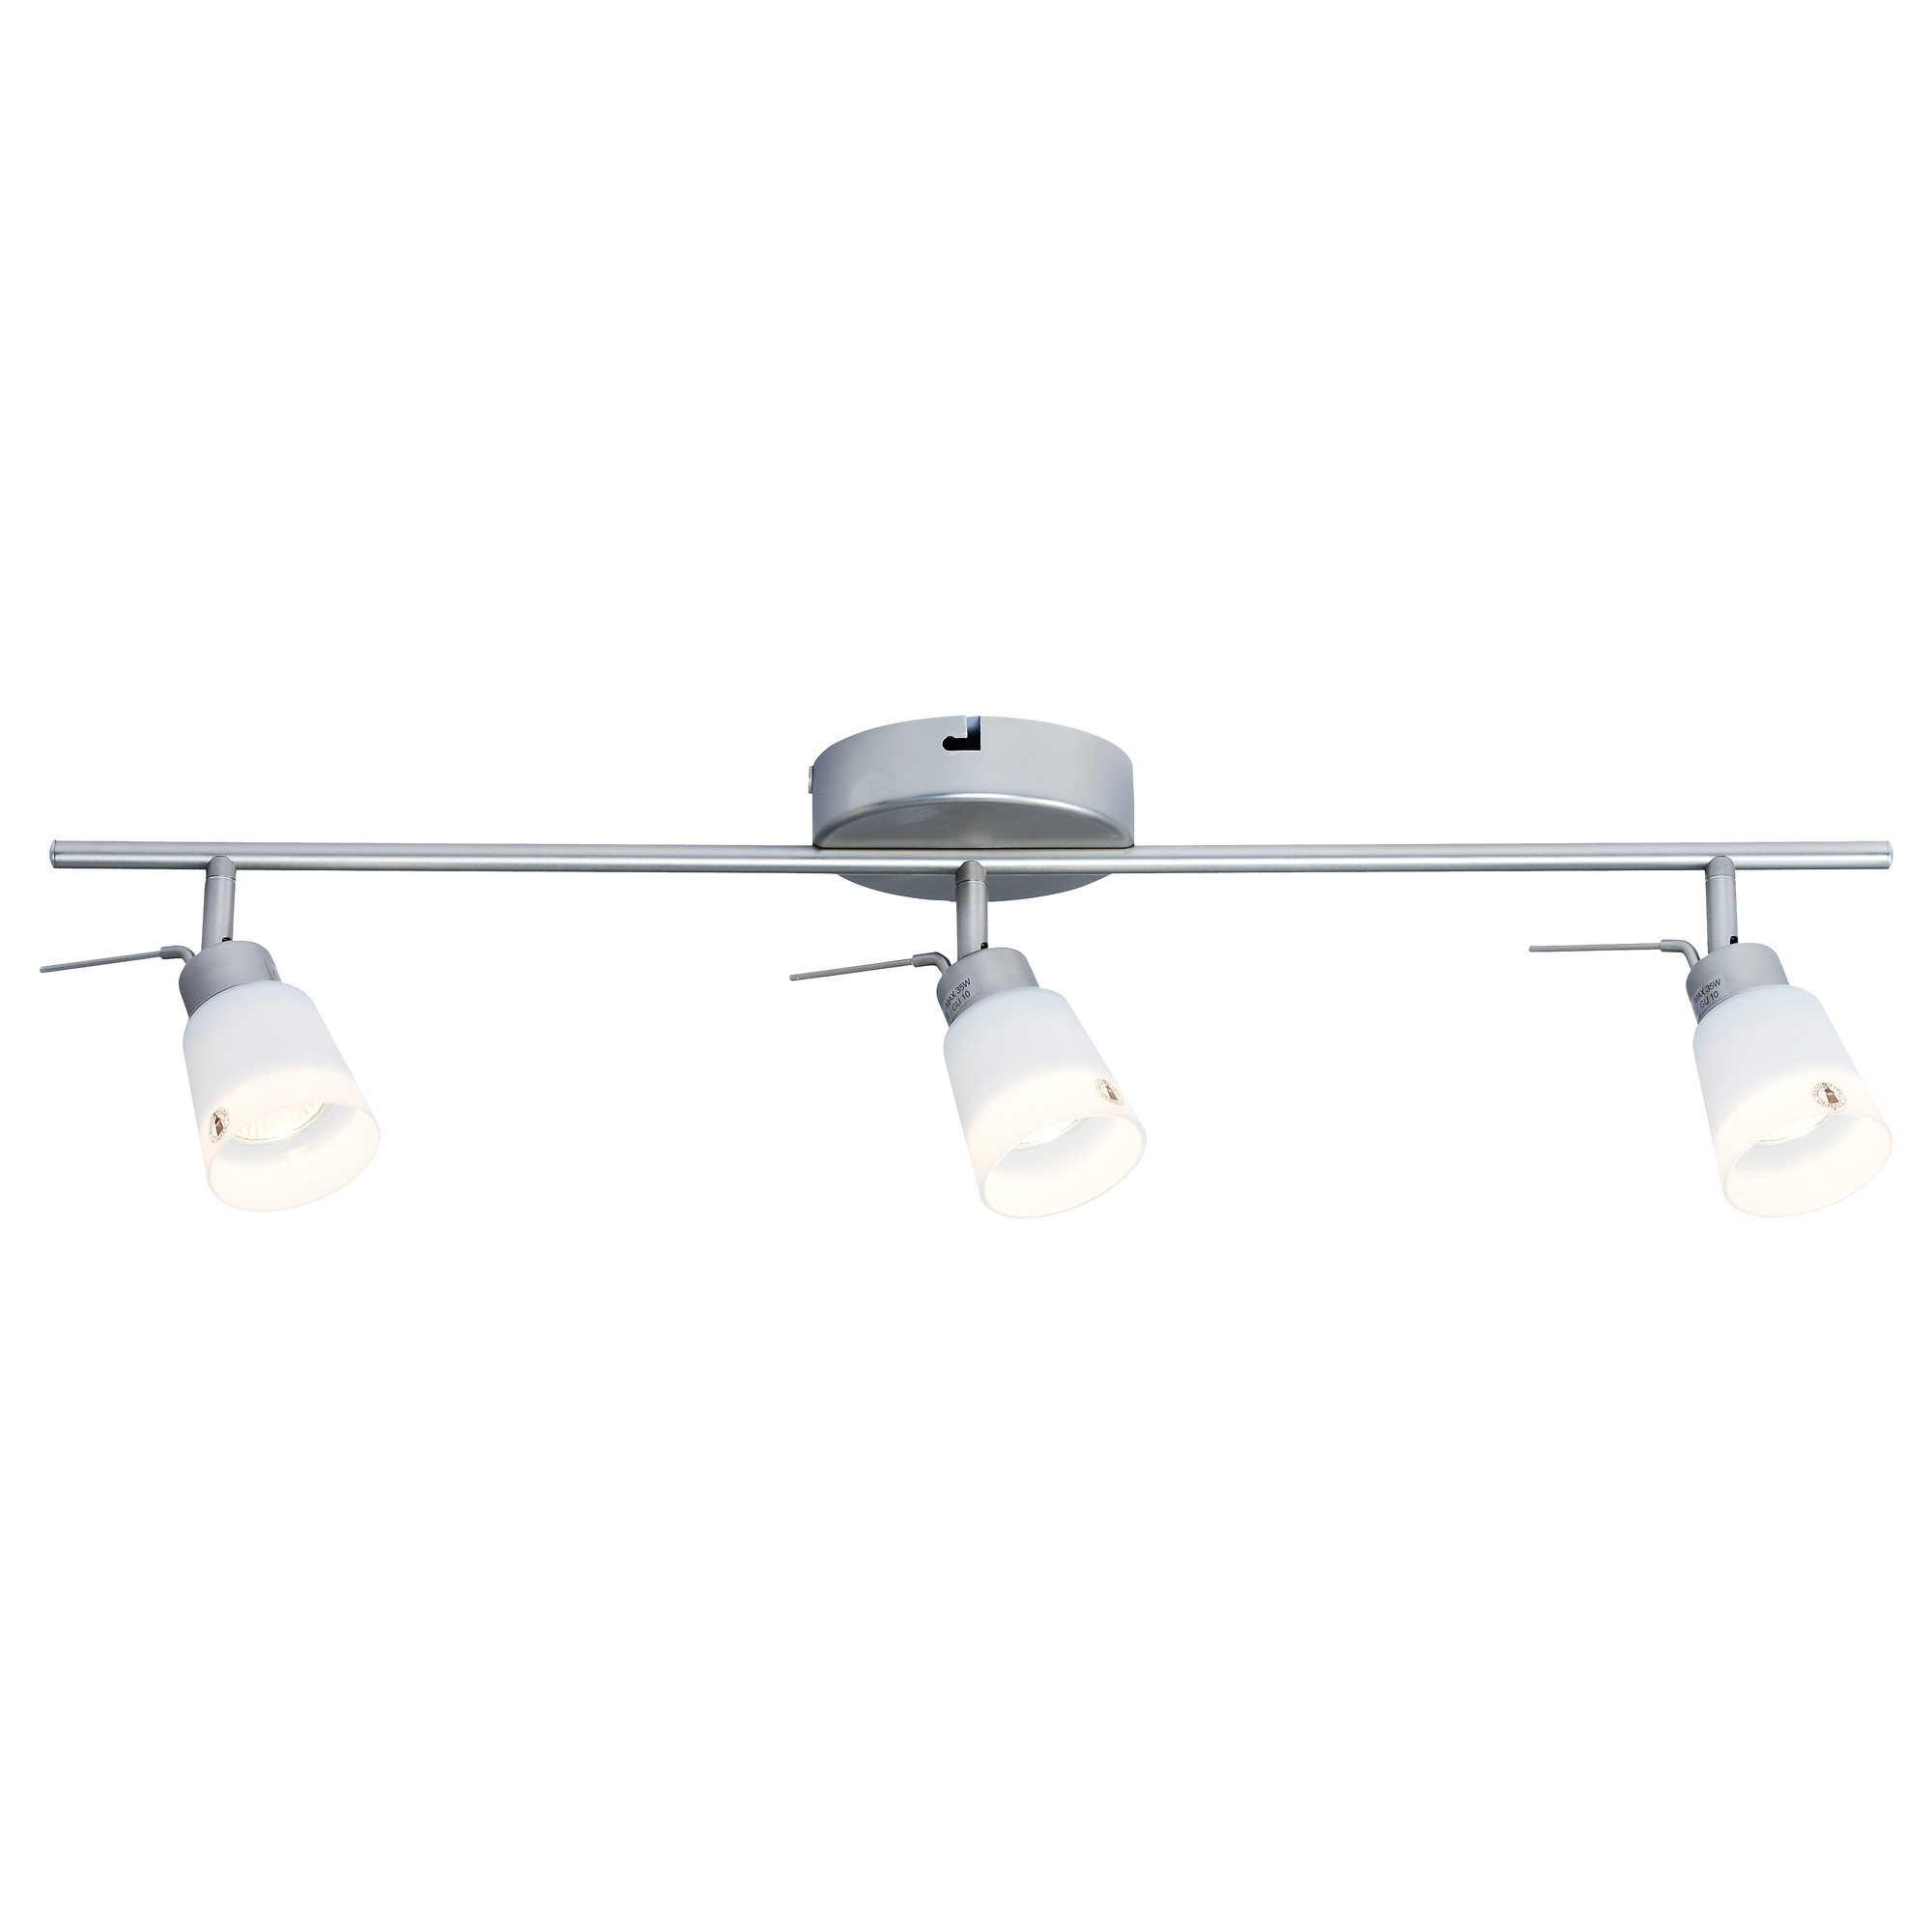 Basisk Ceiling Track 3 Spotlights Ikea Lighting Replacement For Kitchen